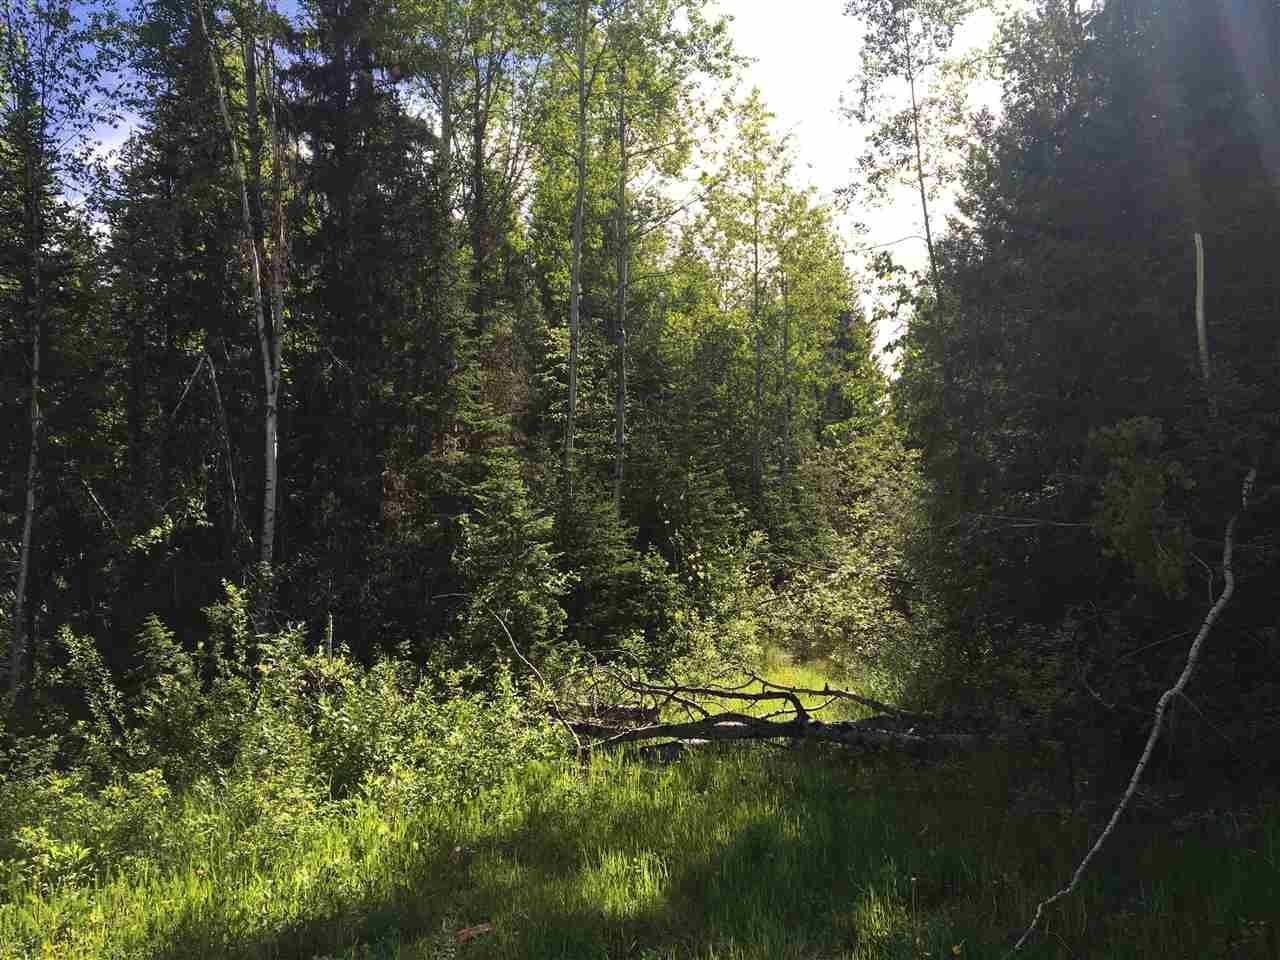 Photo 4: Photos: SHAVER ROAD in Quesnel: Quesnel - Rural North Land for sale (Quesnel (Zone 28))  : MLS®# R2461973